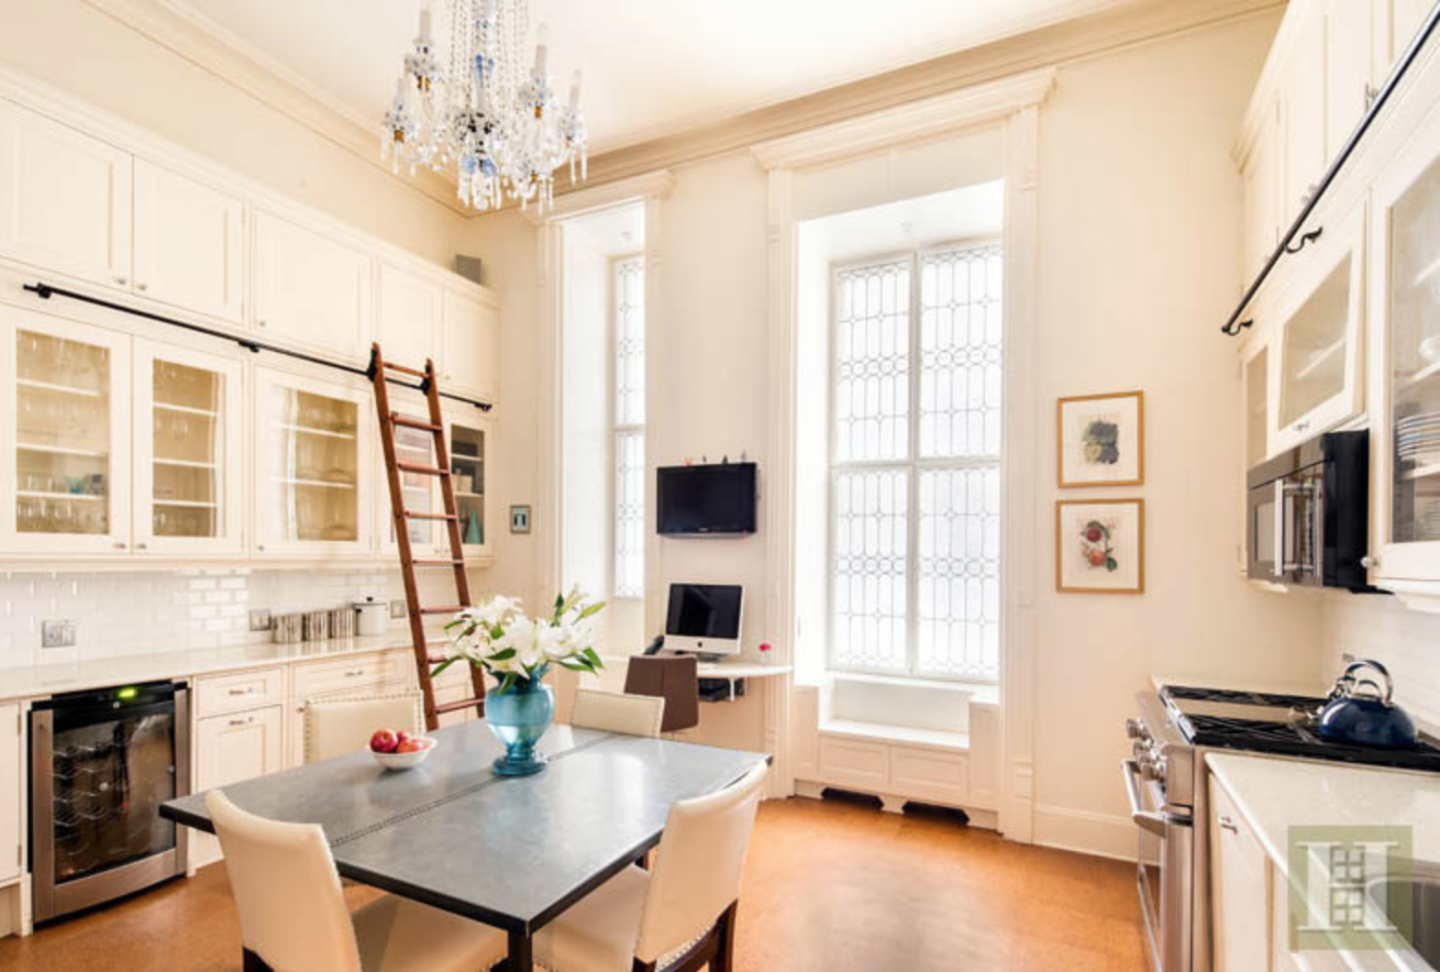 The duplex boasts 14-foot ceilings and features sliding ladders for convenience.